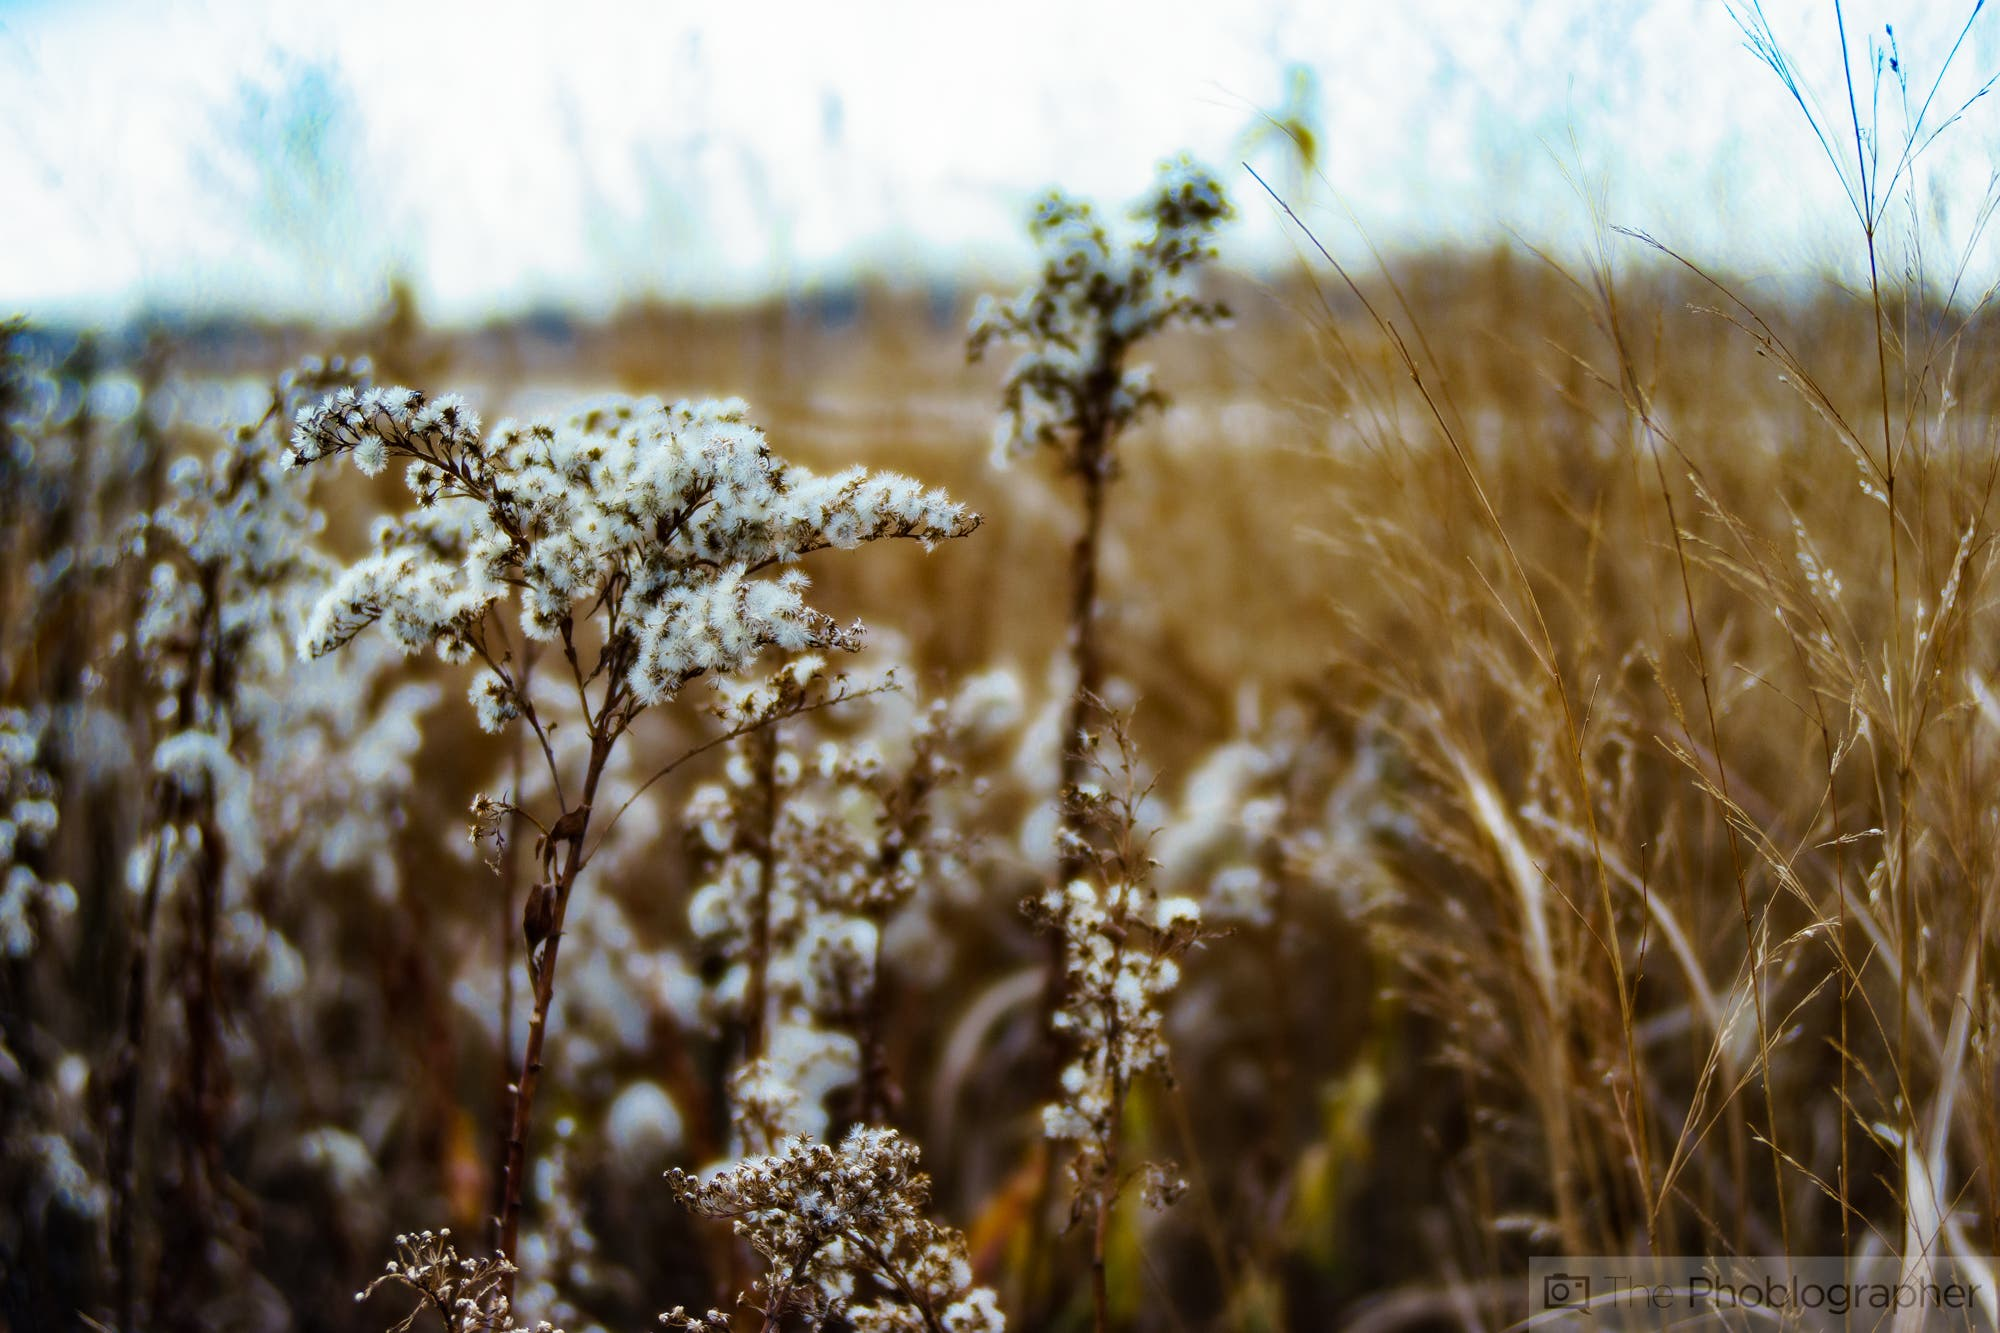 The Lost Art of Freelensing. How to Get the Tilt-Shift Look in a Crafty Way